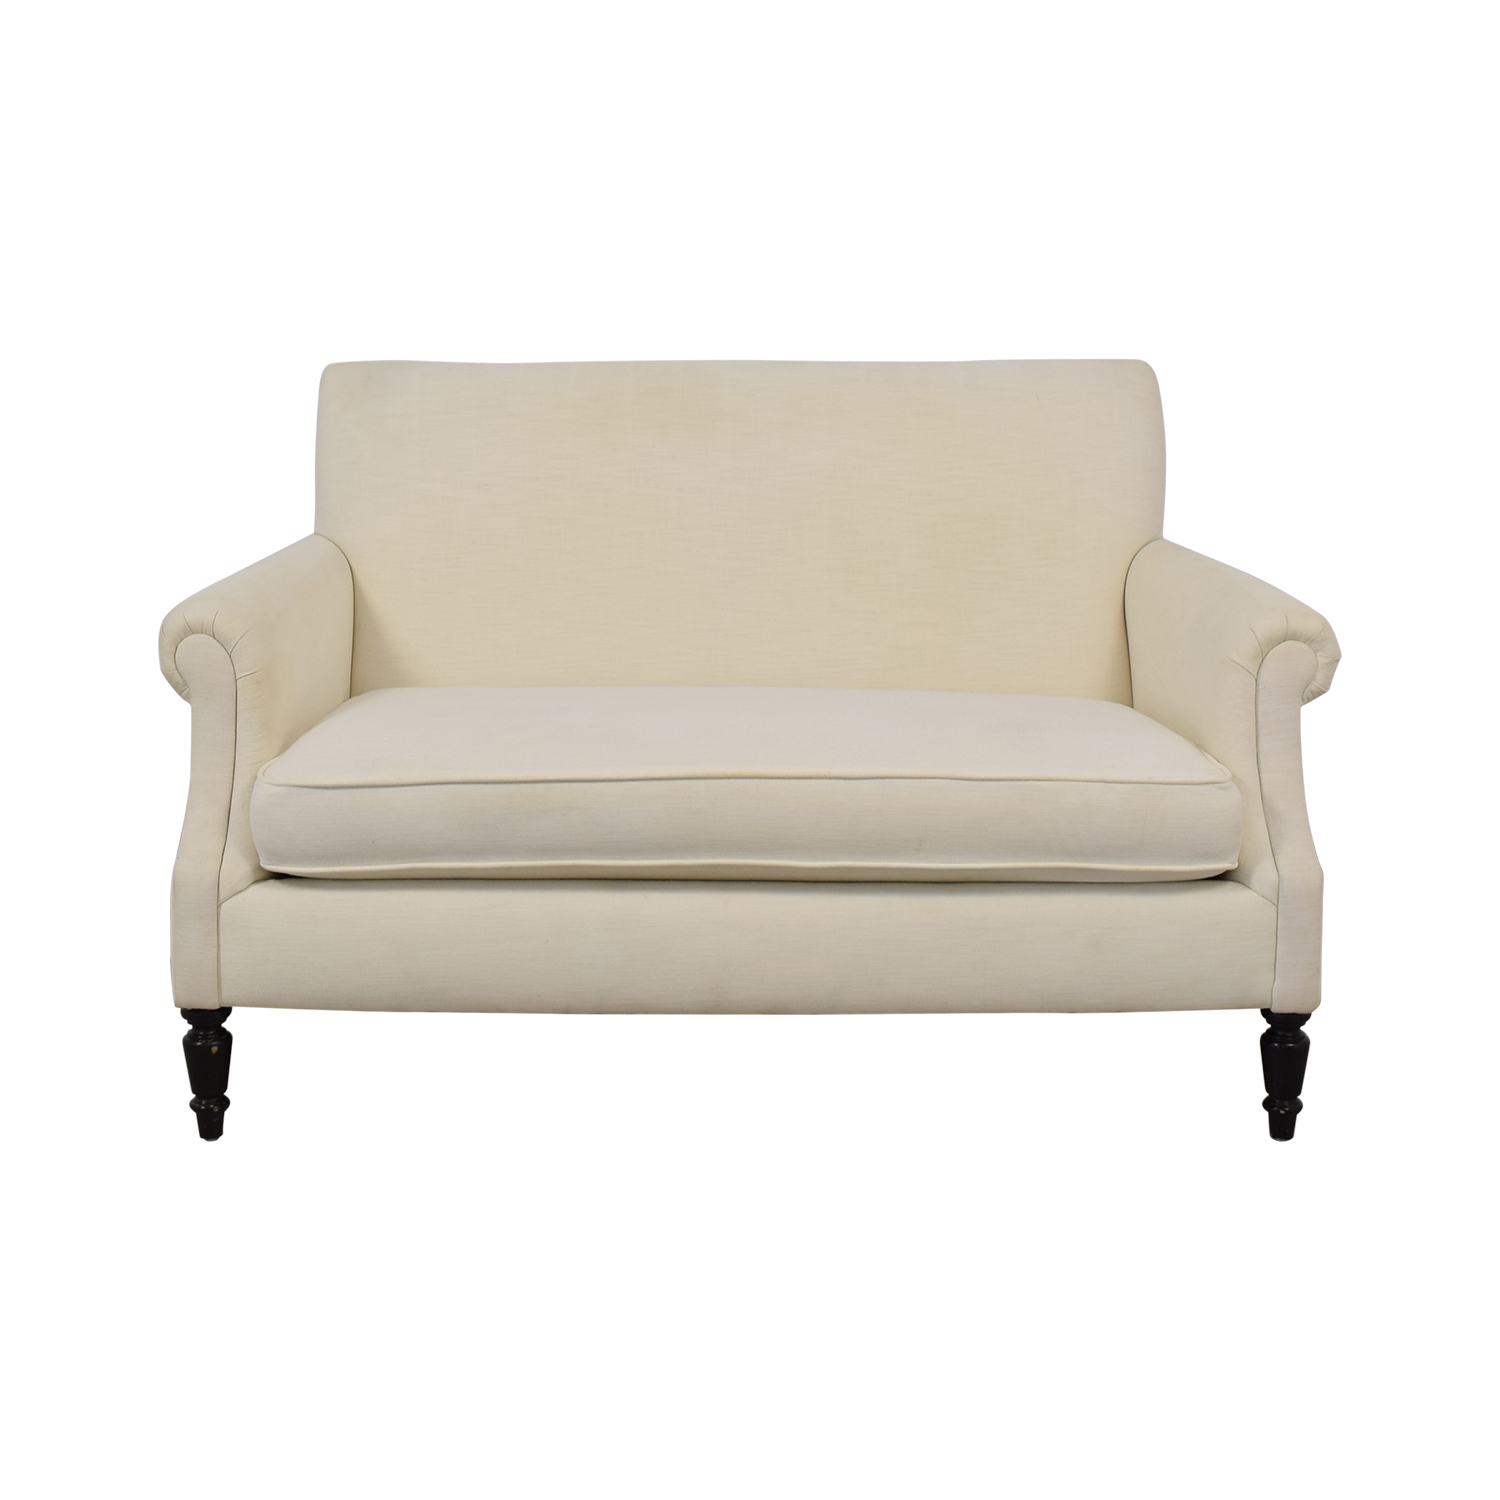 buy Crate & Barrel Roll Arm Loveseat Crate & Barrel Sofas